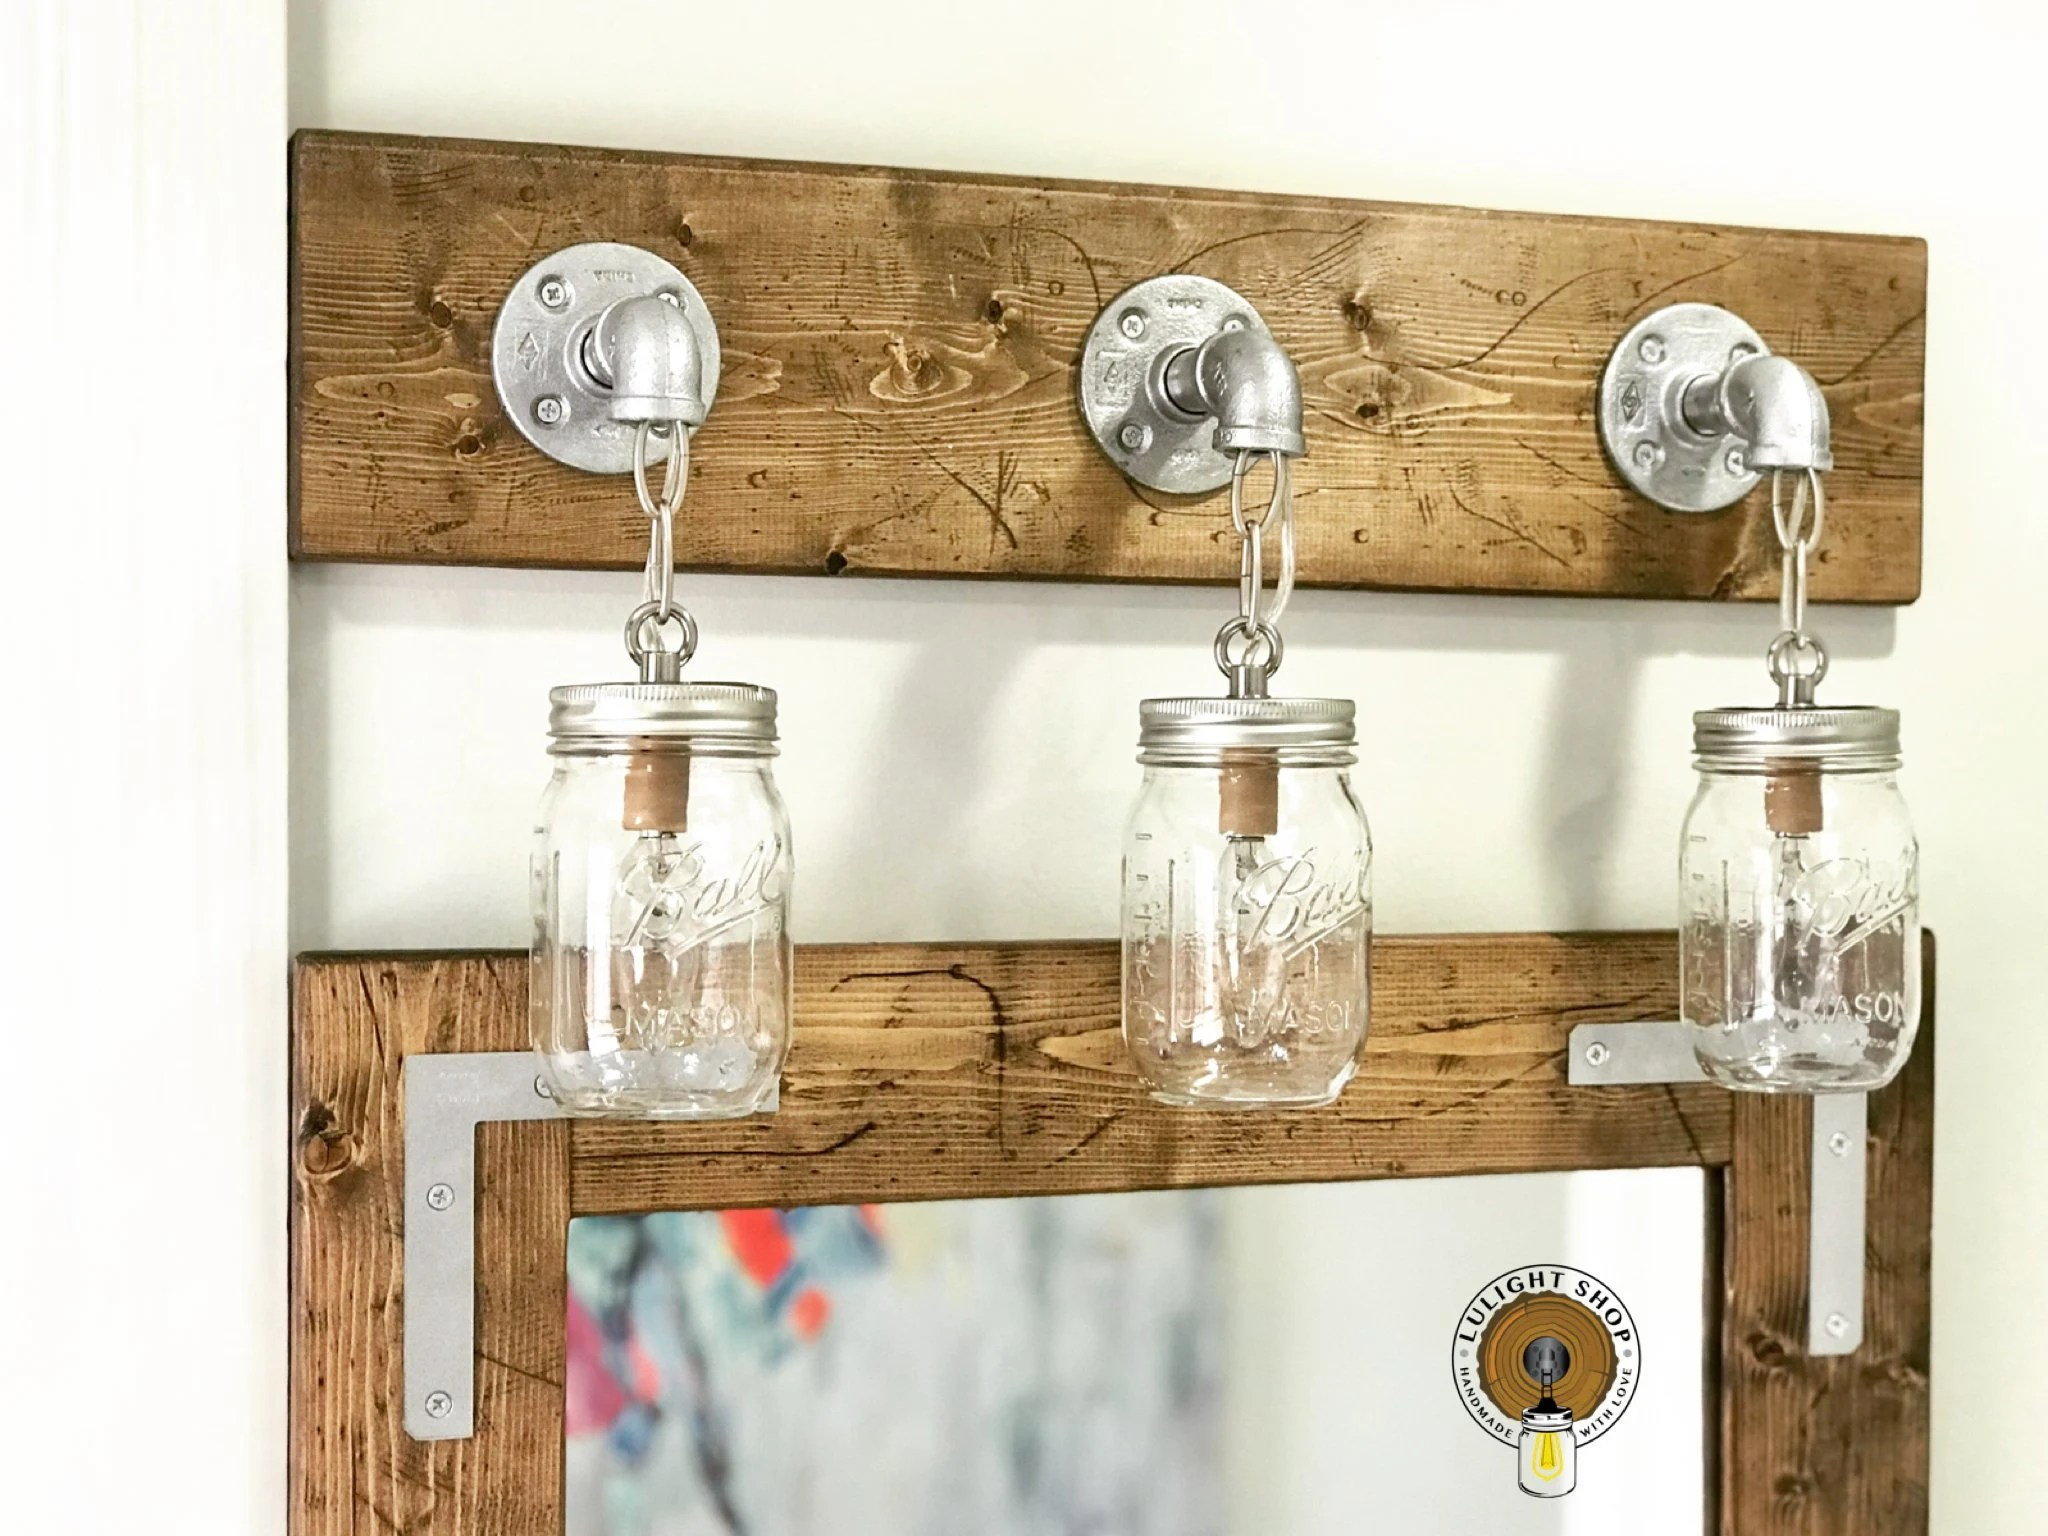 Mason Jar Bathroom Light Rustic Distressed Mason Jar Light 3 Light Vanity Light Bathroom Light Fixture Handmade Mason Jar Lighting Jar Lights Mason Jar Decor